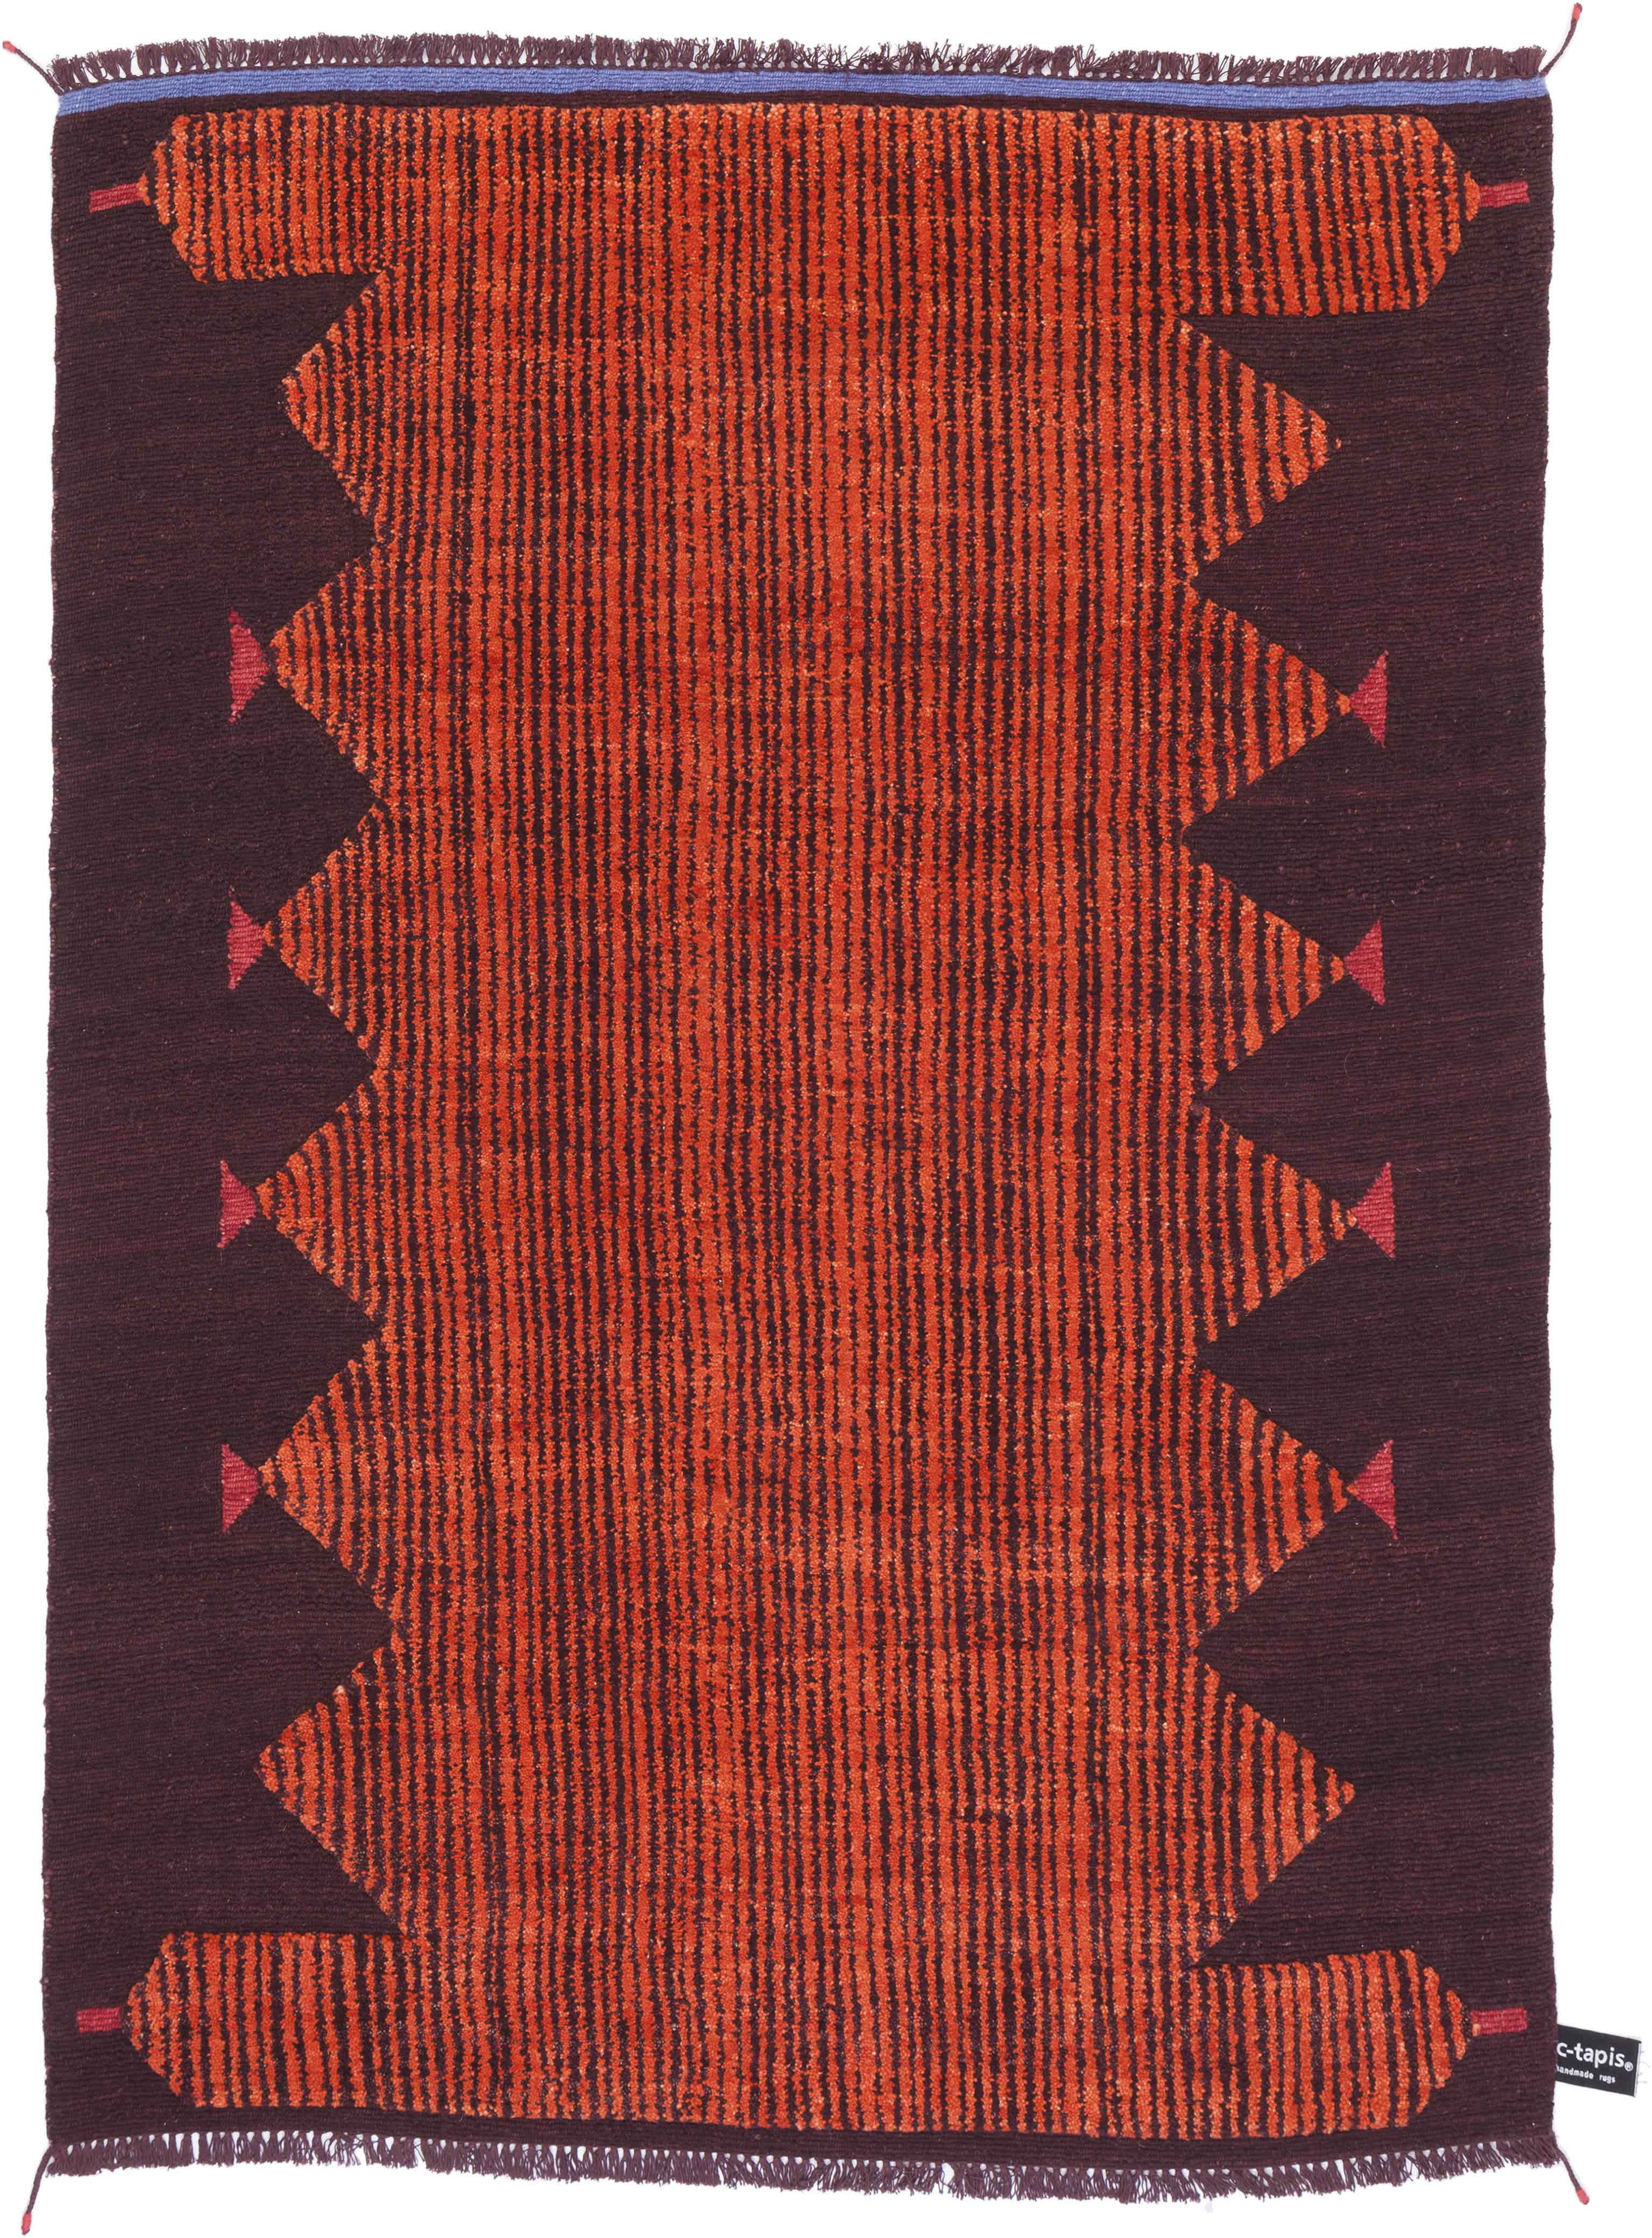 'Primitive Weave Rust 4' by Chiara Andreatti for cc-tapis. | Image courtesy of cc-tapis.